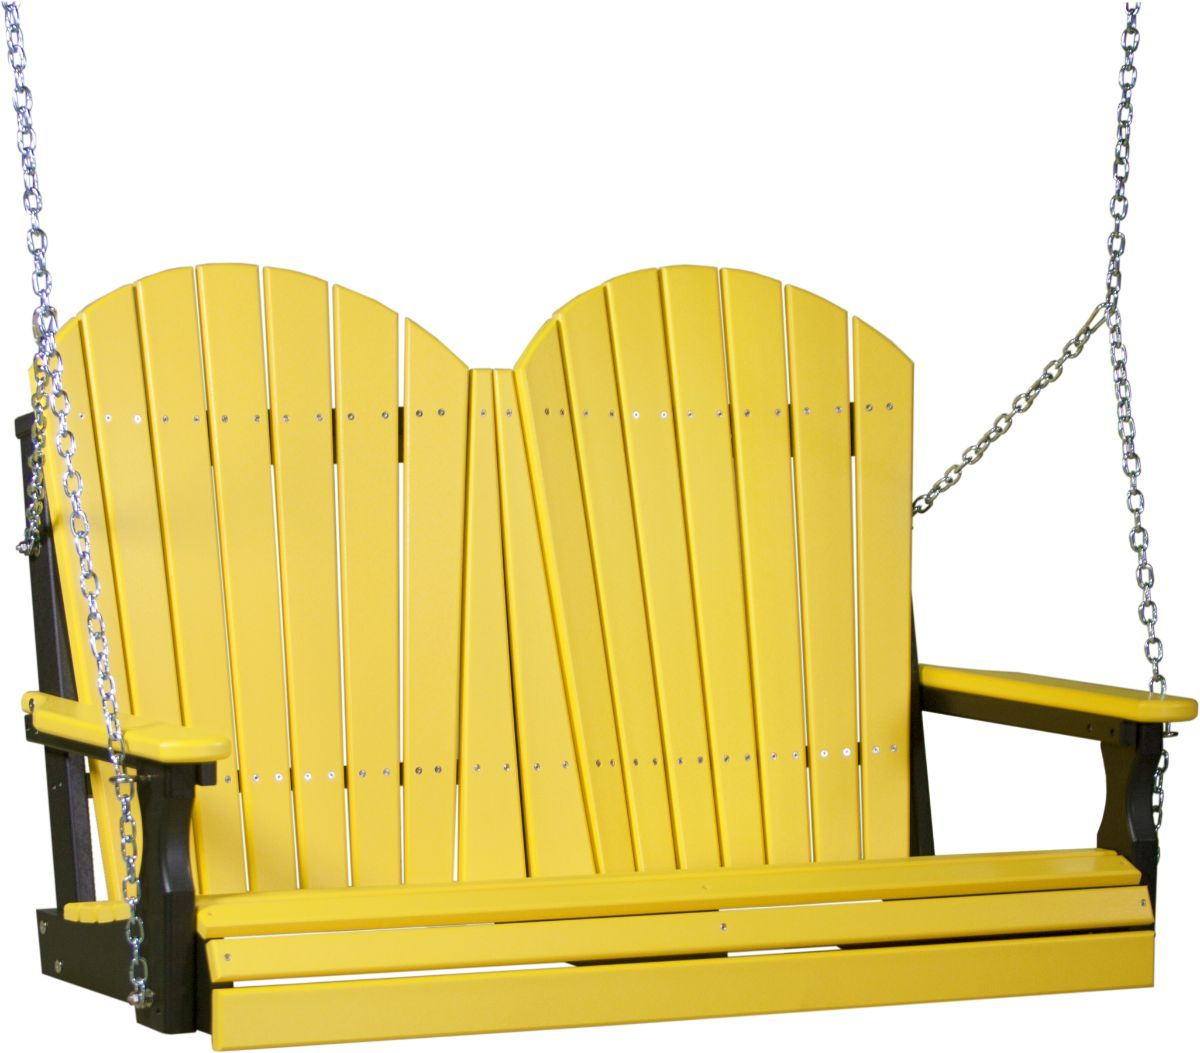 Yellow and Black Tahiti Adirondack Porch Swing